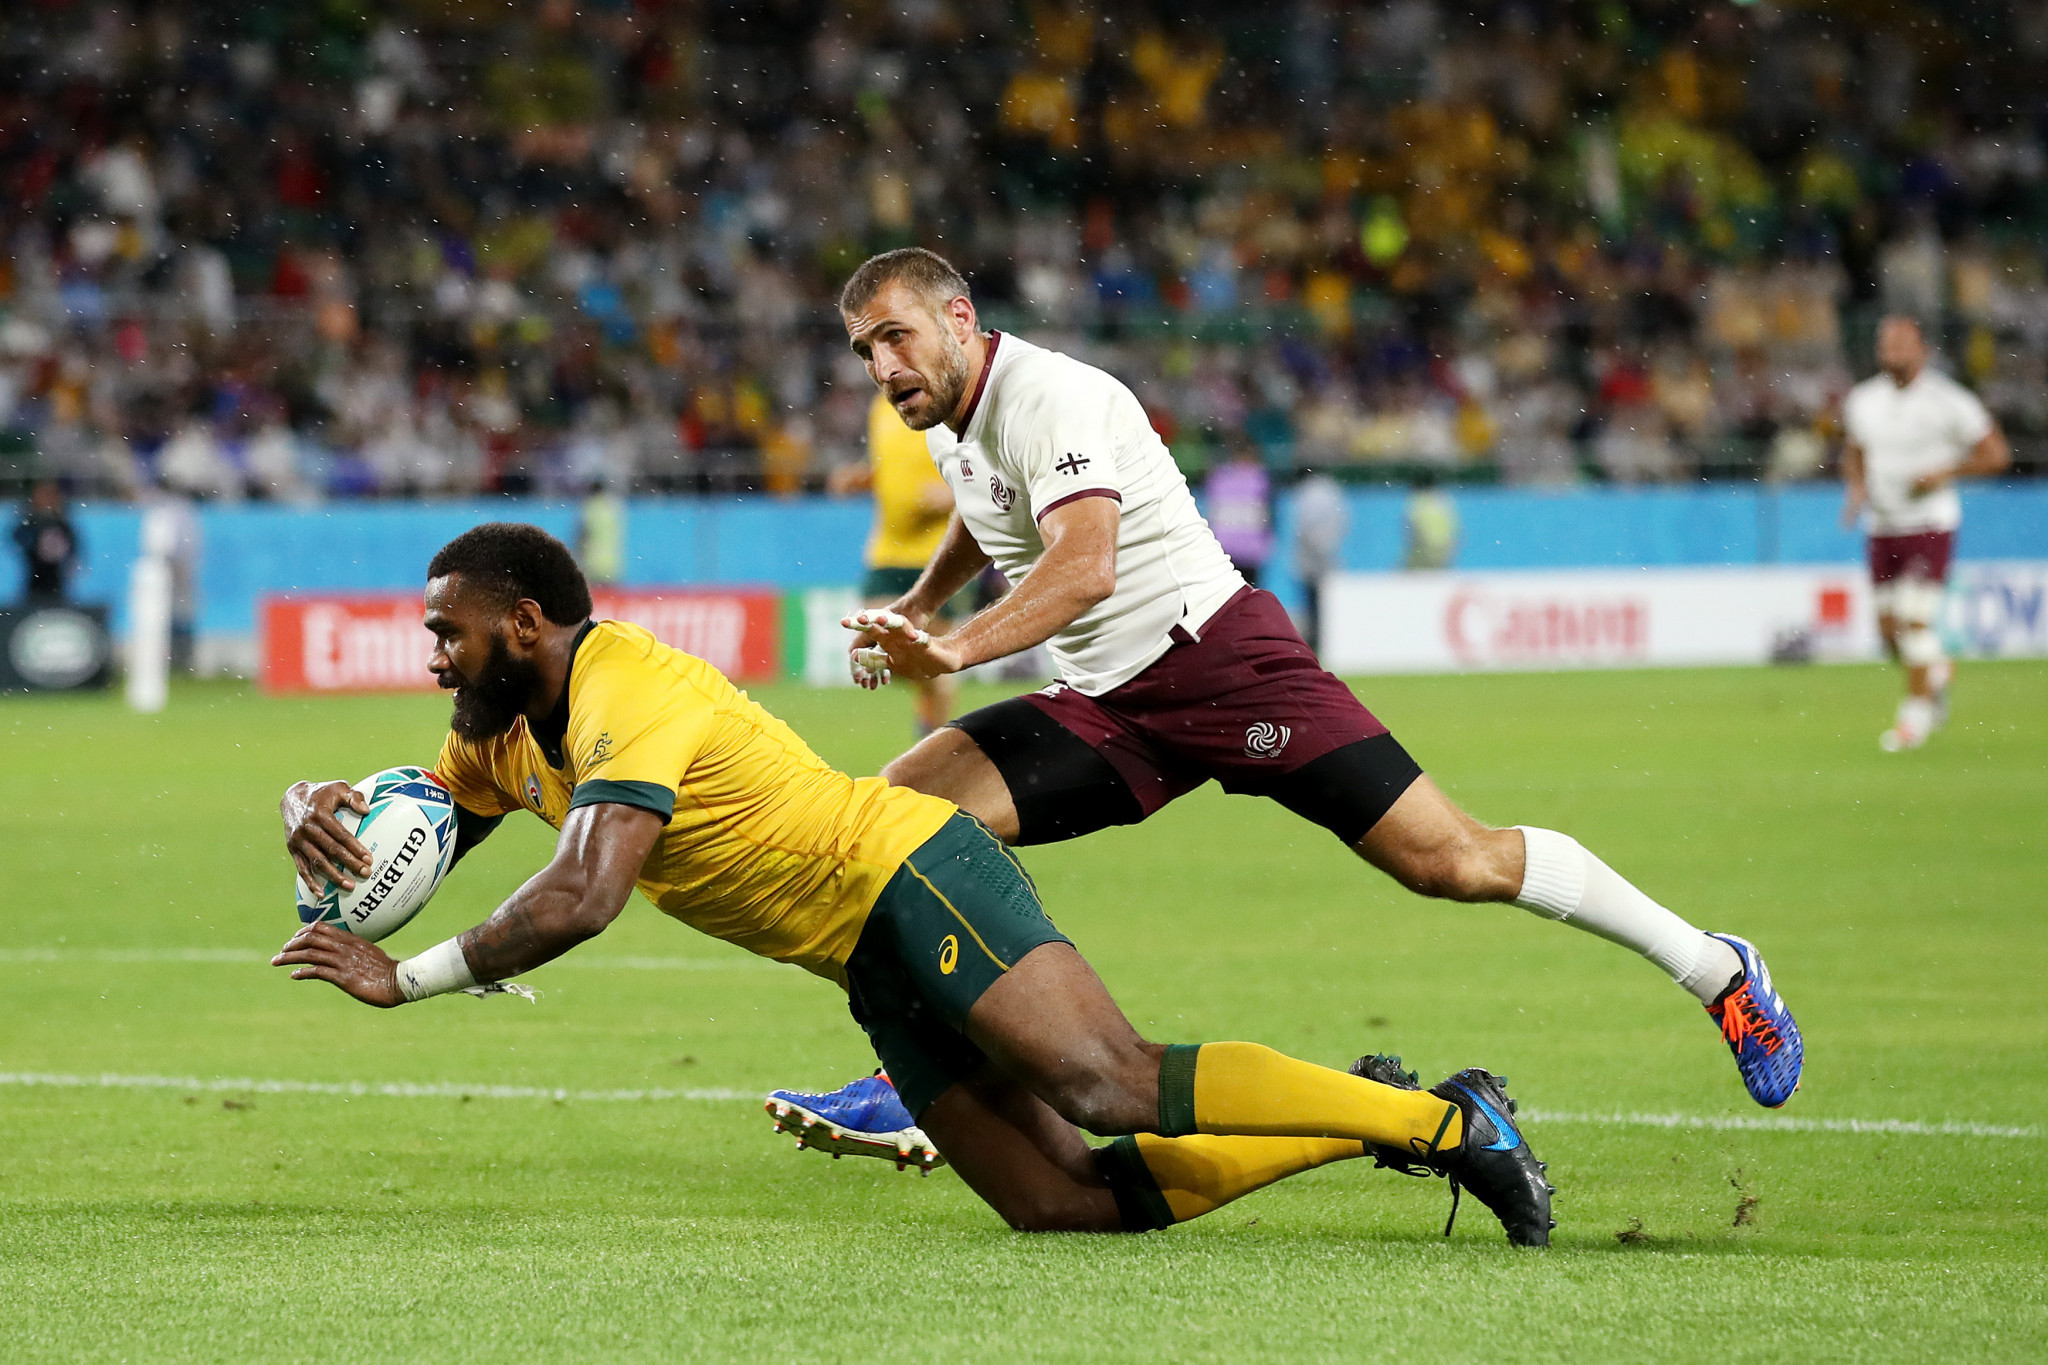 Marika Koroibete's try was one of the high points for Australia ©Getty Images